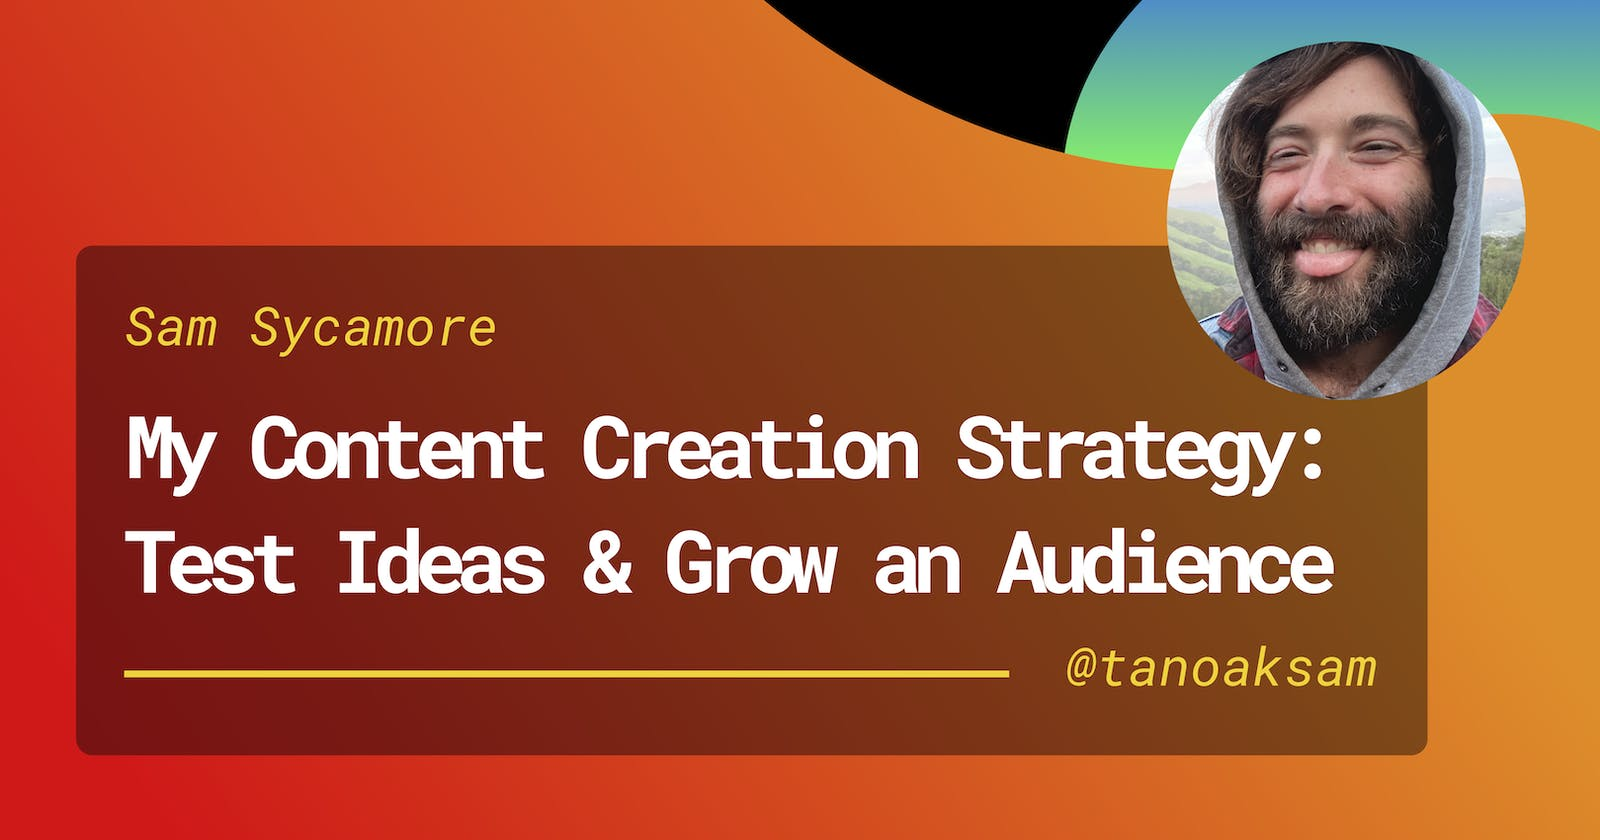 My Content Creation Strategy for Testing Ideas & Growing an Audience